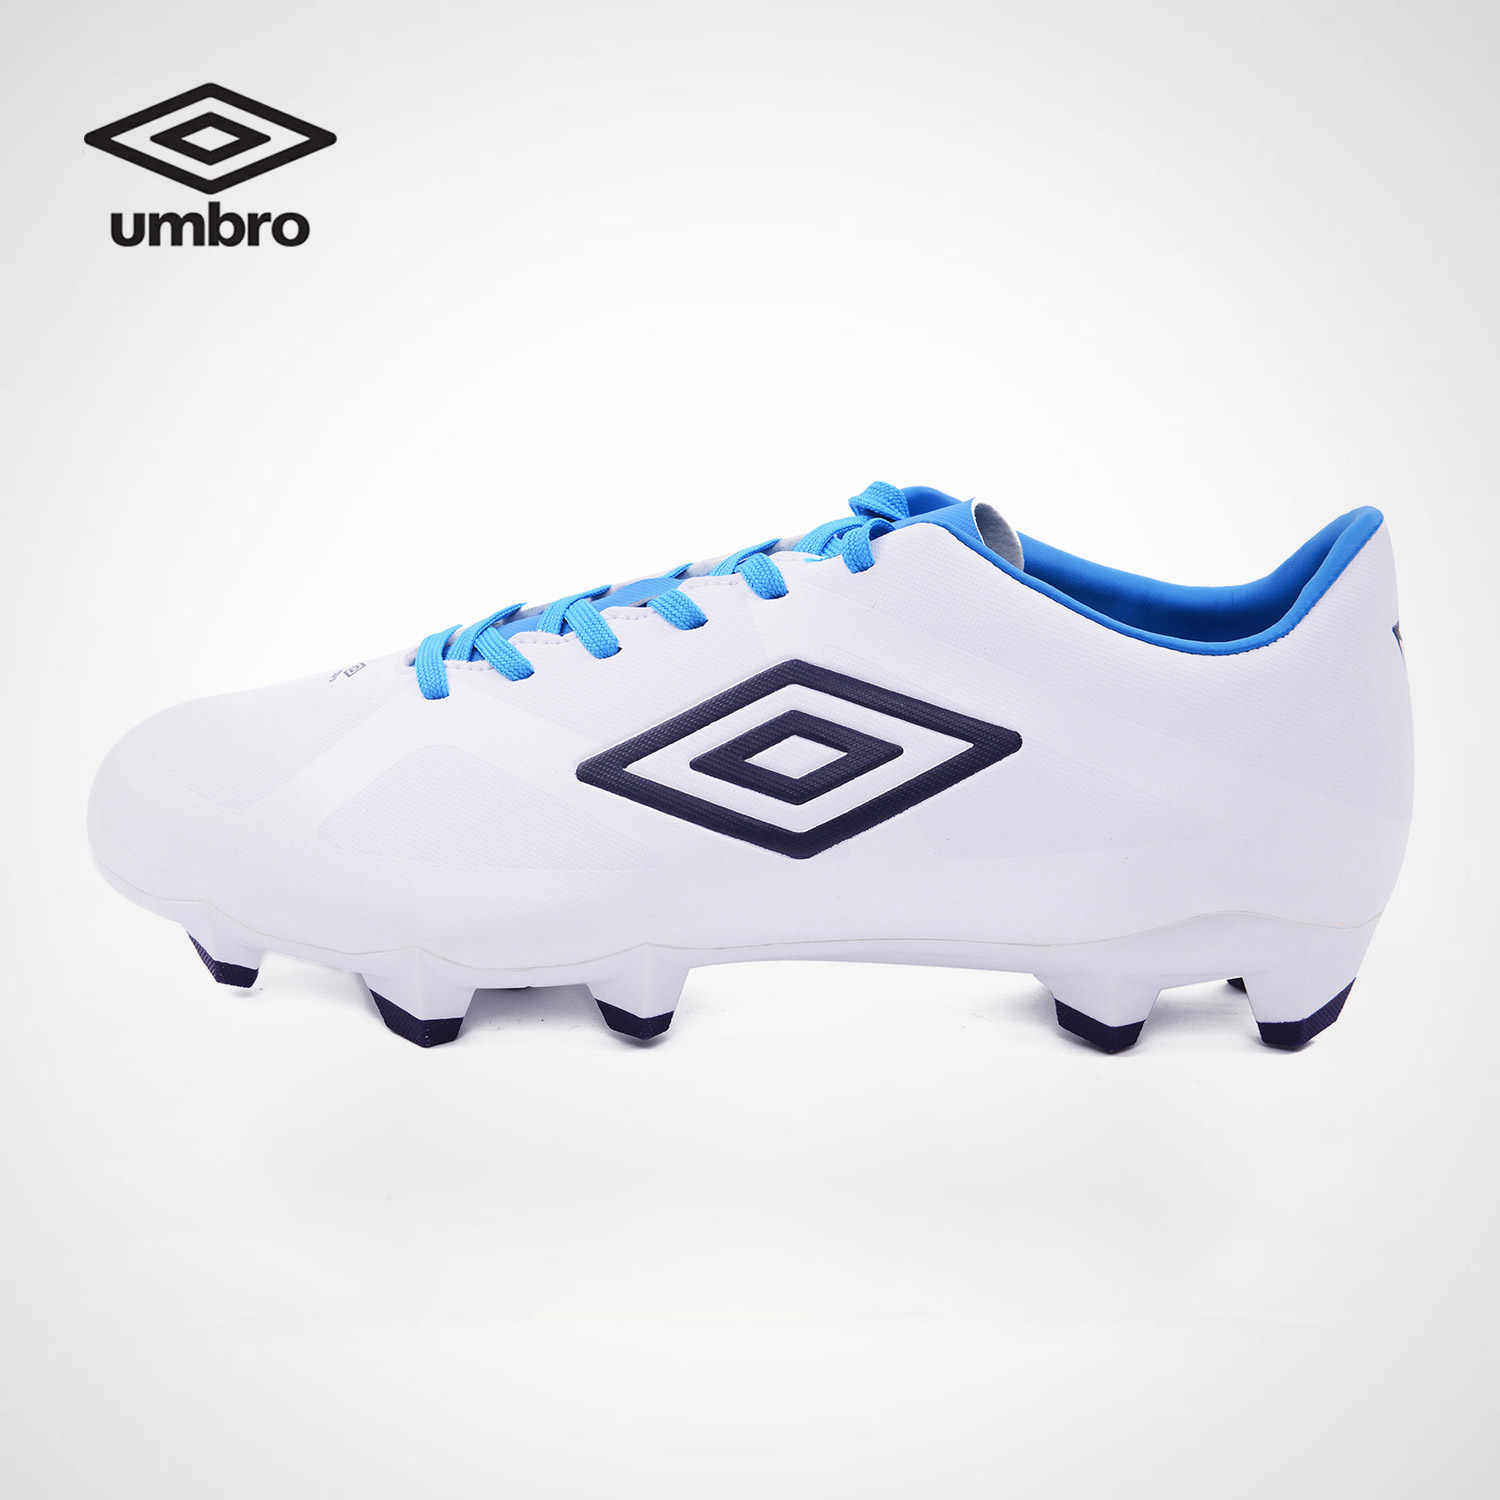 Umbro Football Shoes Men New Rubber Soles Anti Slip Adult Students  Professional Training Sneakers Sports Shoes f2a3a1b66